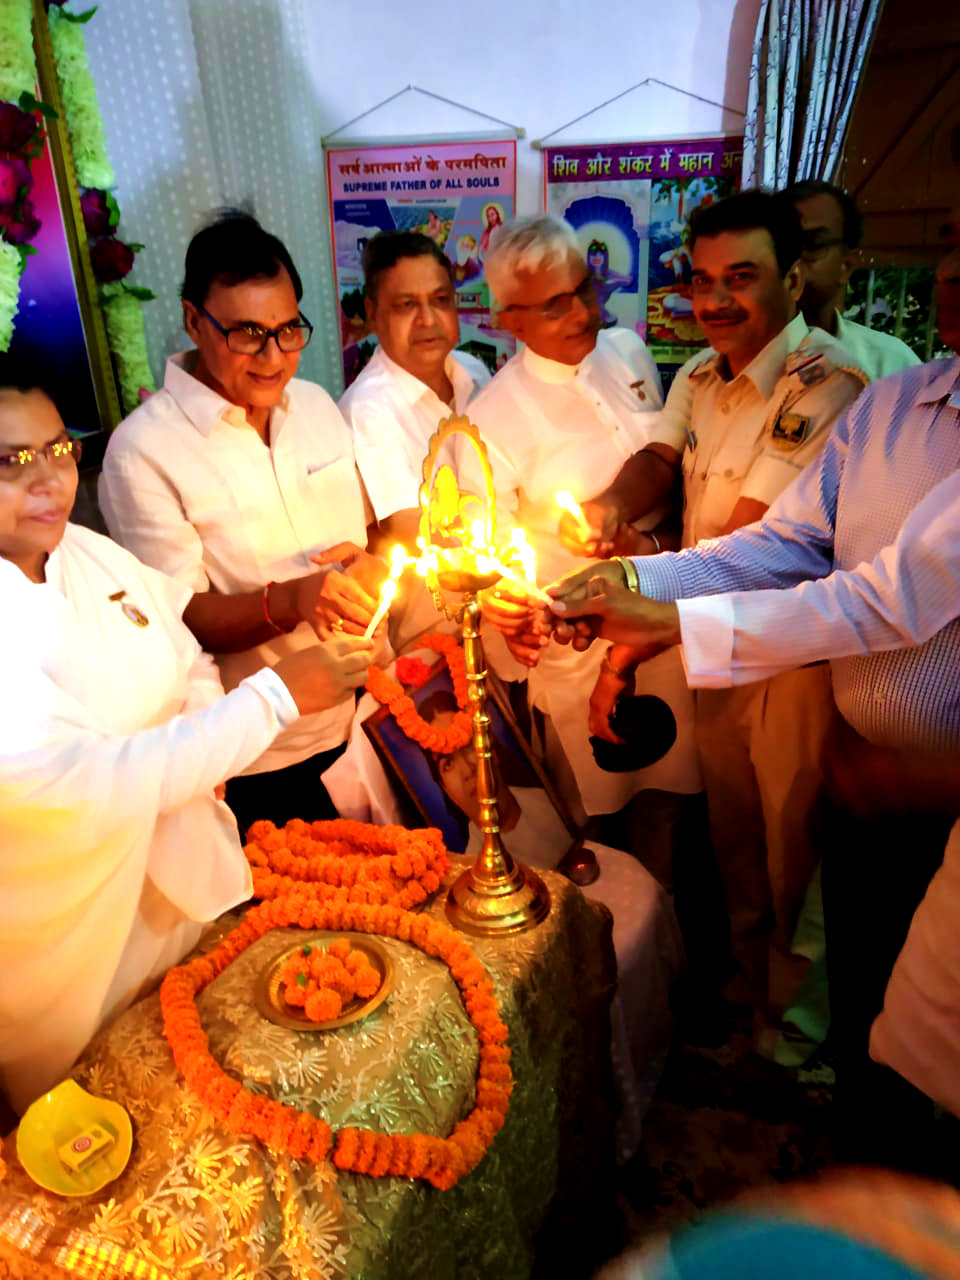 Dr.Madhepuri along with Rajyogini Ranju Didi, Civil Surgeon Dr.Gadadhar Pandey and others inaugurating a function at Prajapita Brahma Kumari Ishwariya Vishwavidyalaya Madhepura.